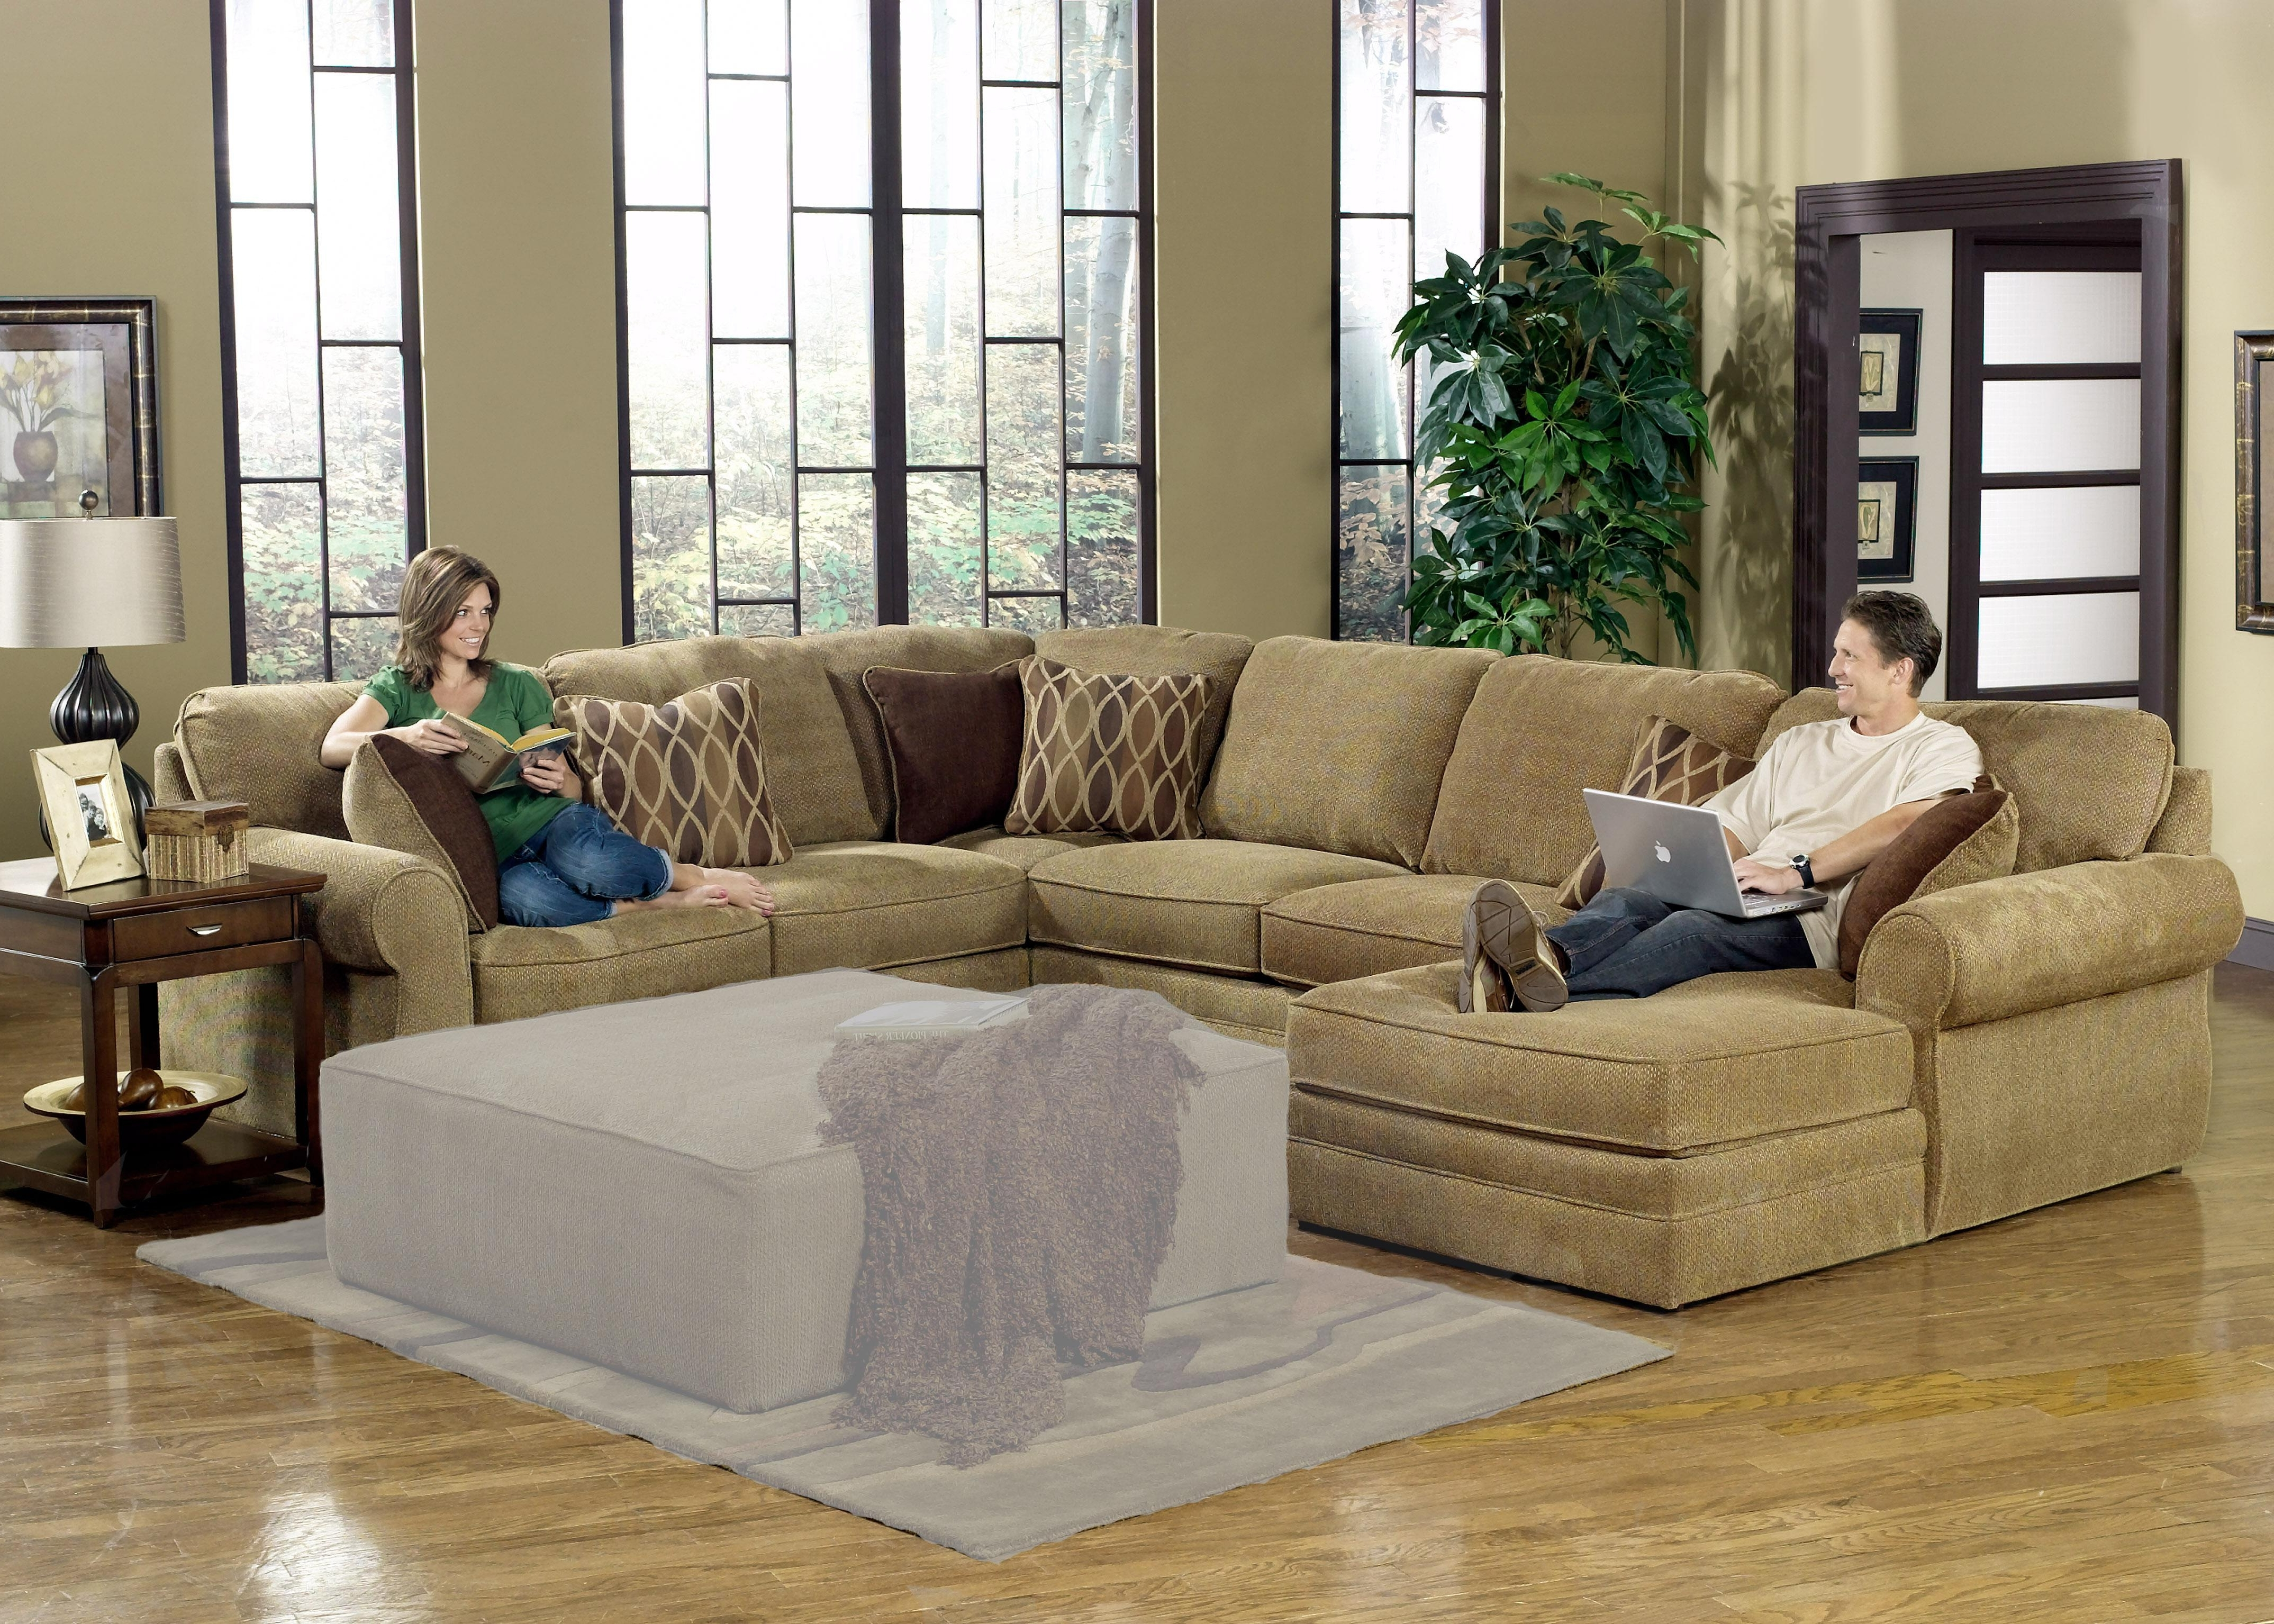 Fascinating U Shaped Sectional Sofas 123 Sofa Sectionals Canada Inside Latest Ontario Sectional Sofas (View 6 of 15)